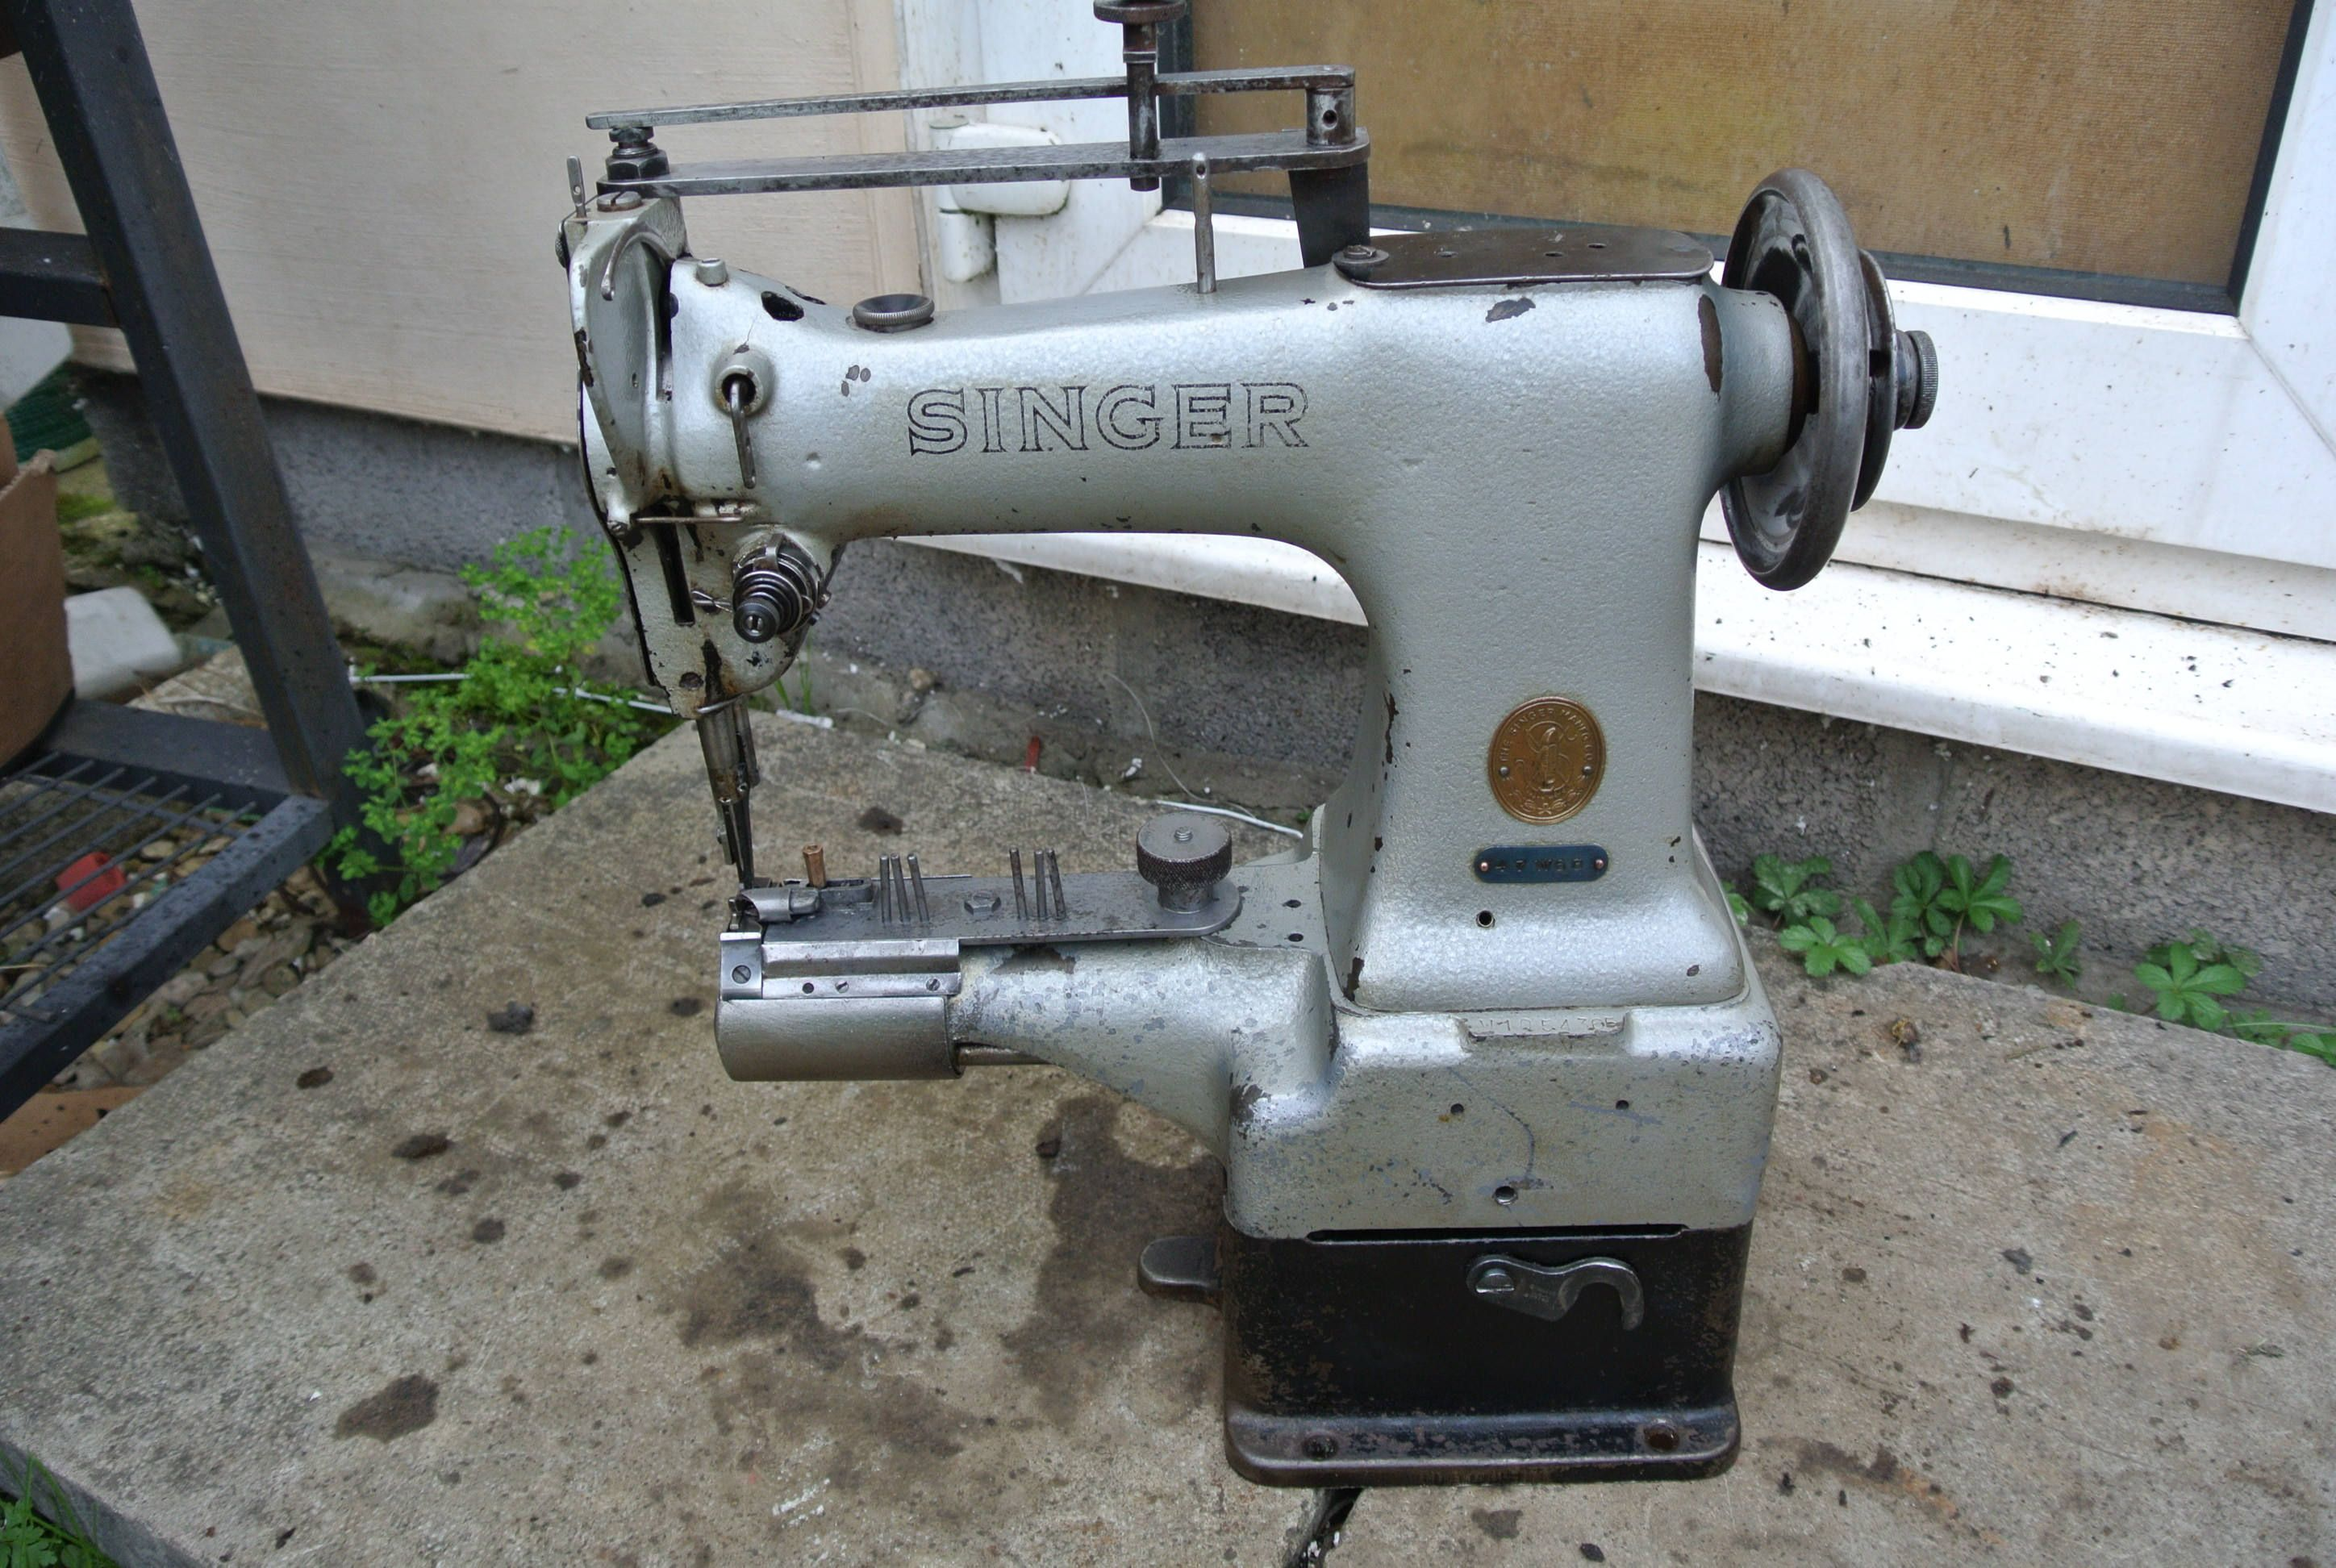 Singer 47k63 cylinder arm walking foot industrial sewing machine with binder by for Trapper keeper 2 sewn binder with exterior storage